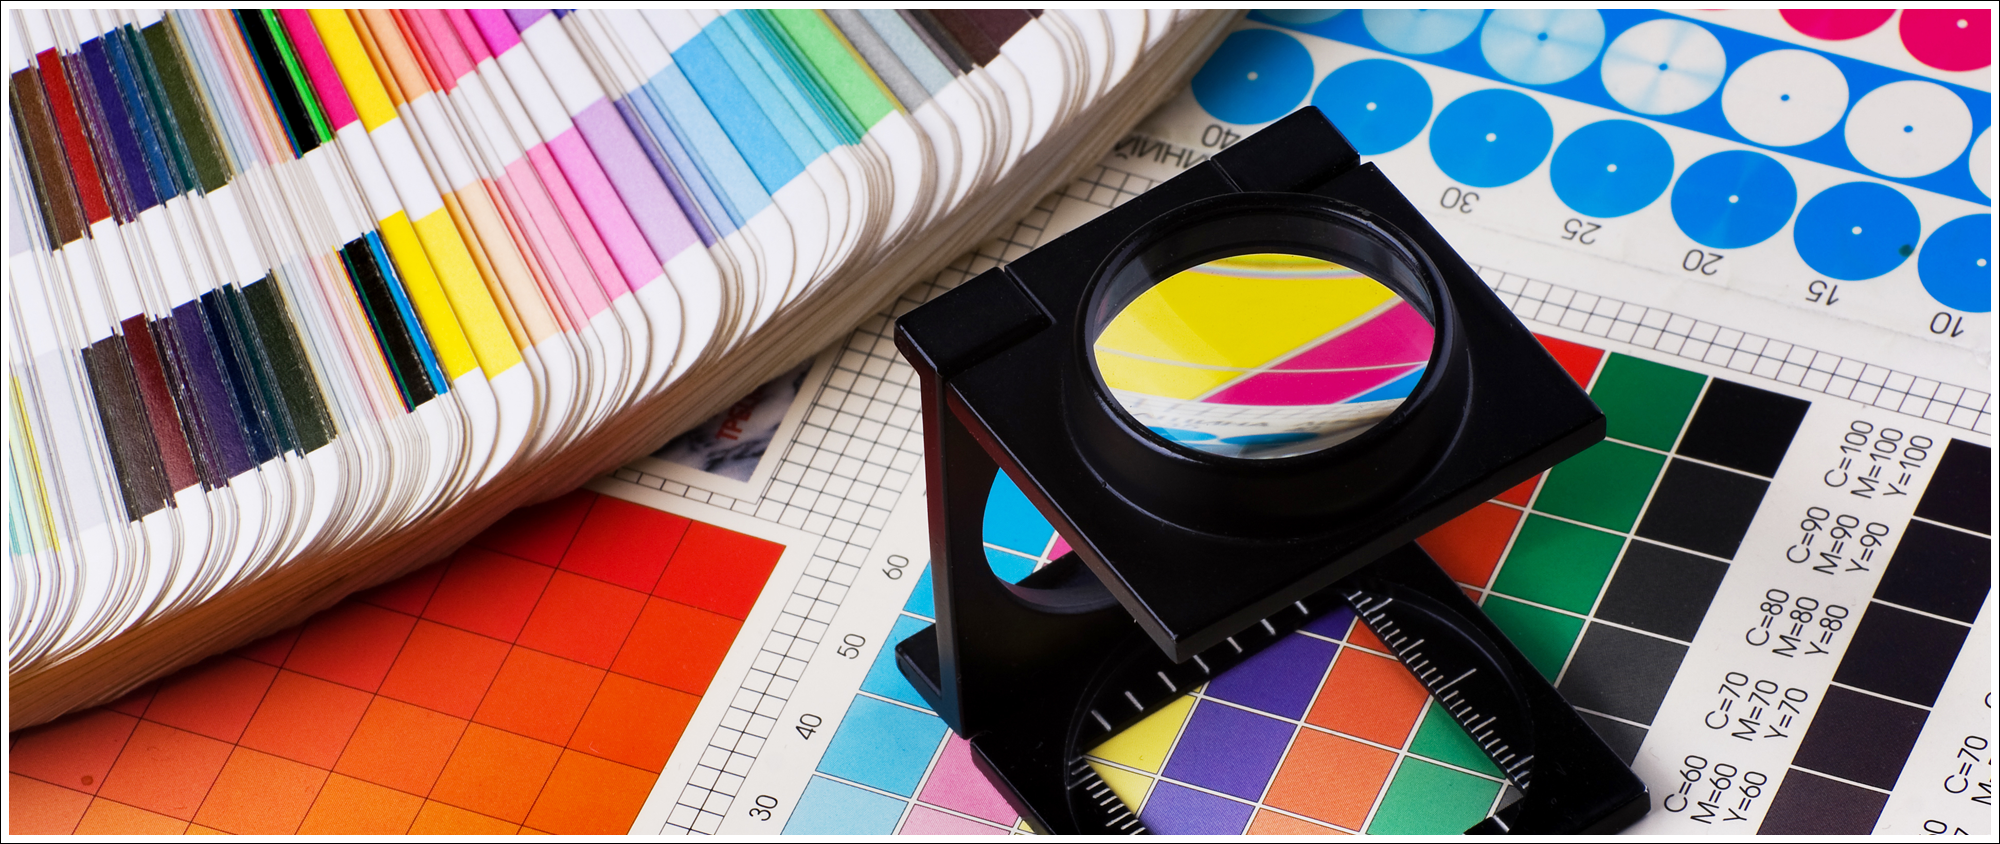 Digital vs Litho Printing | Premier Print UK - Fastest Printers in East Anglia!